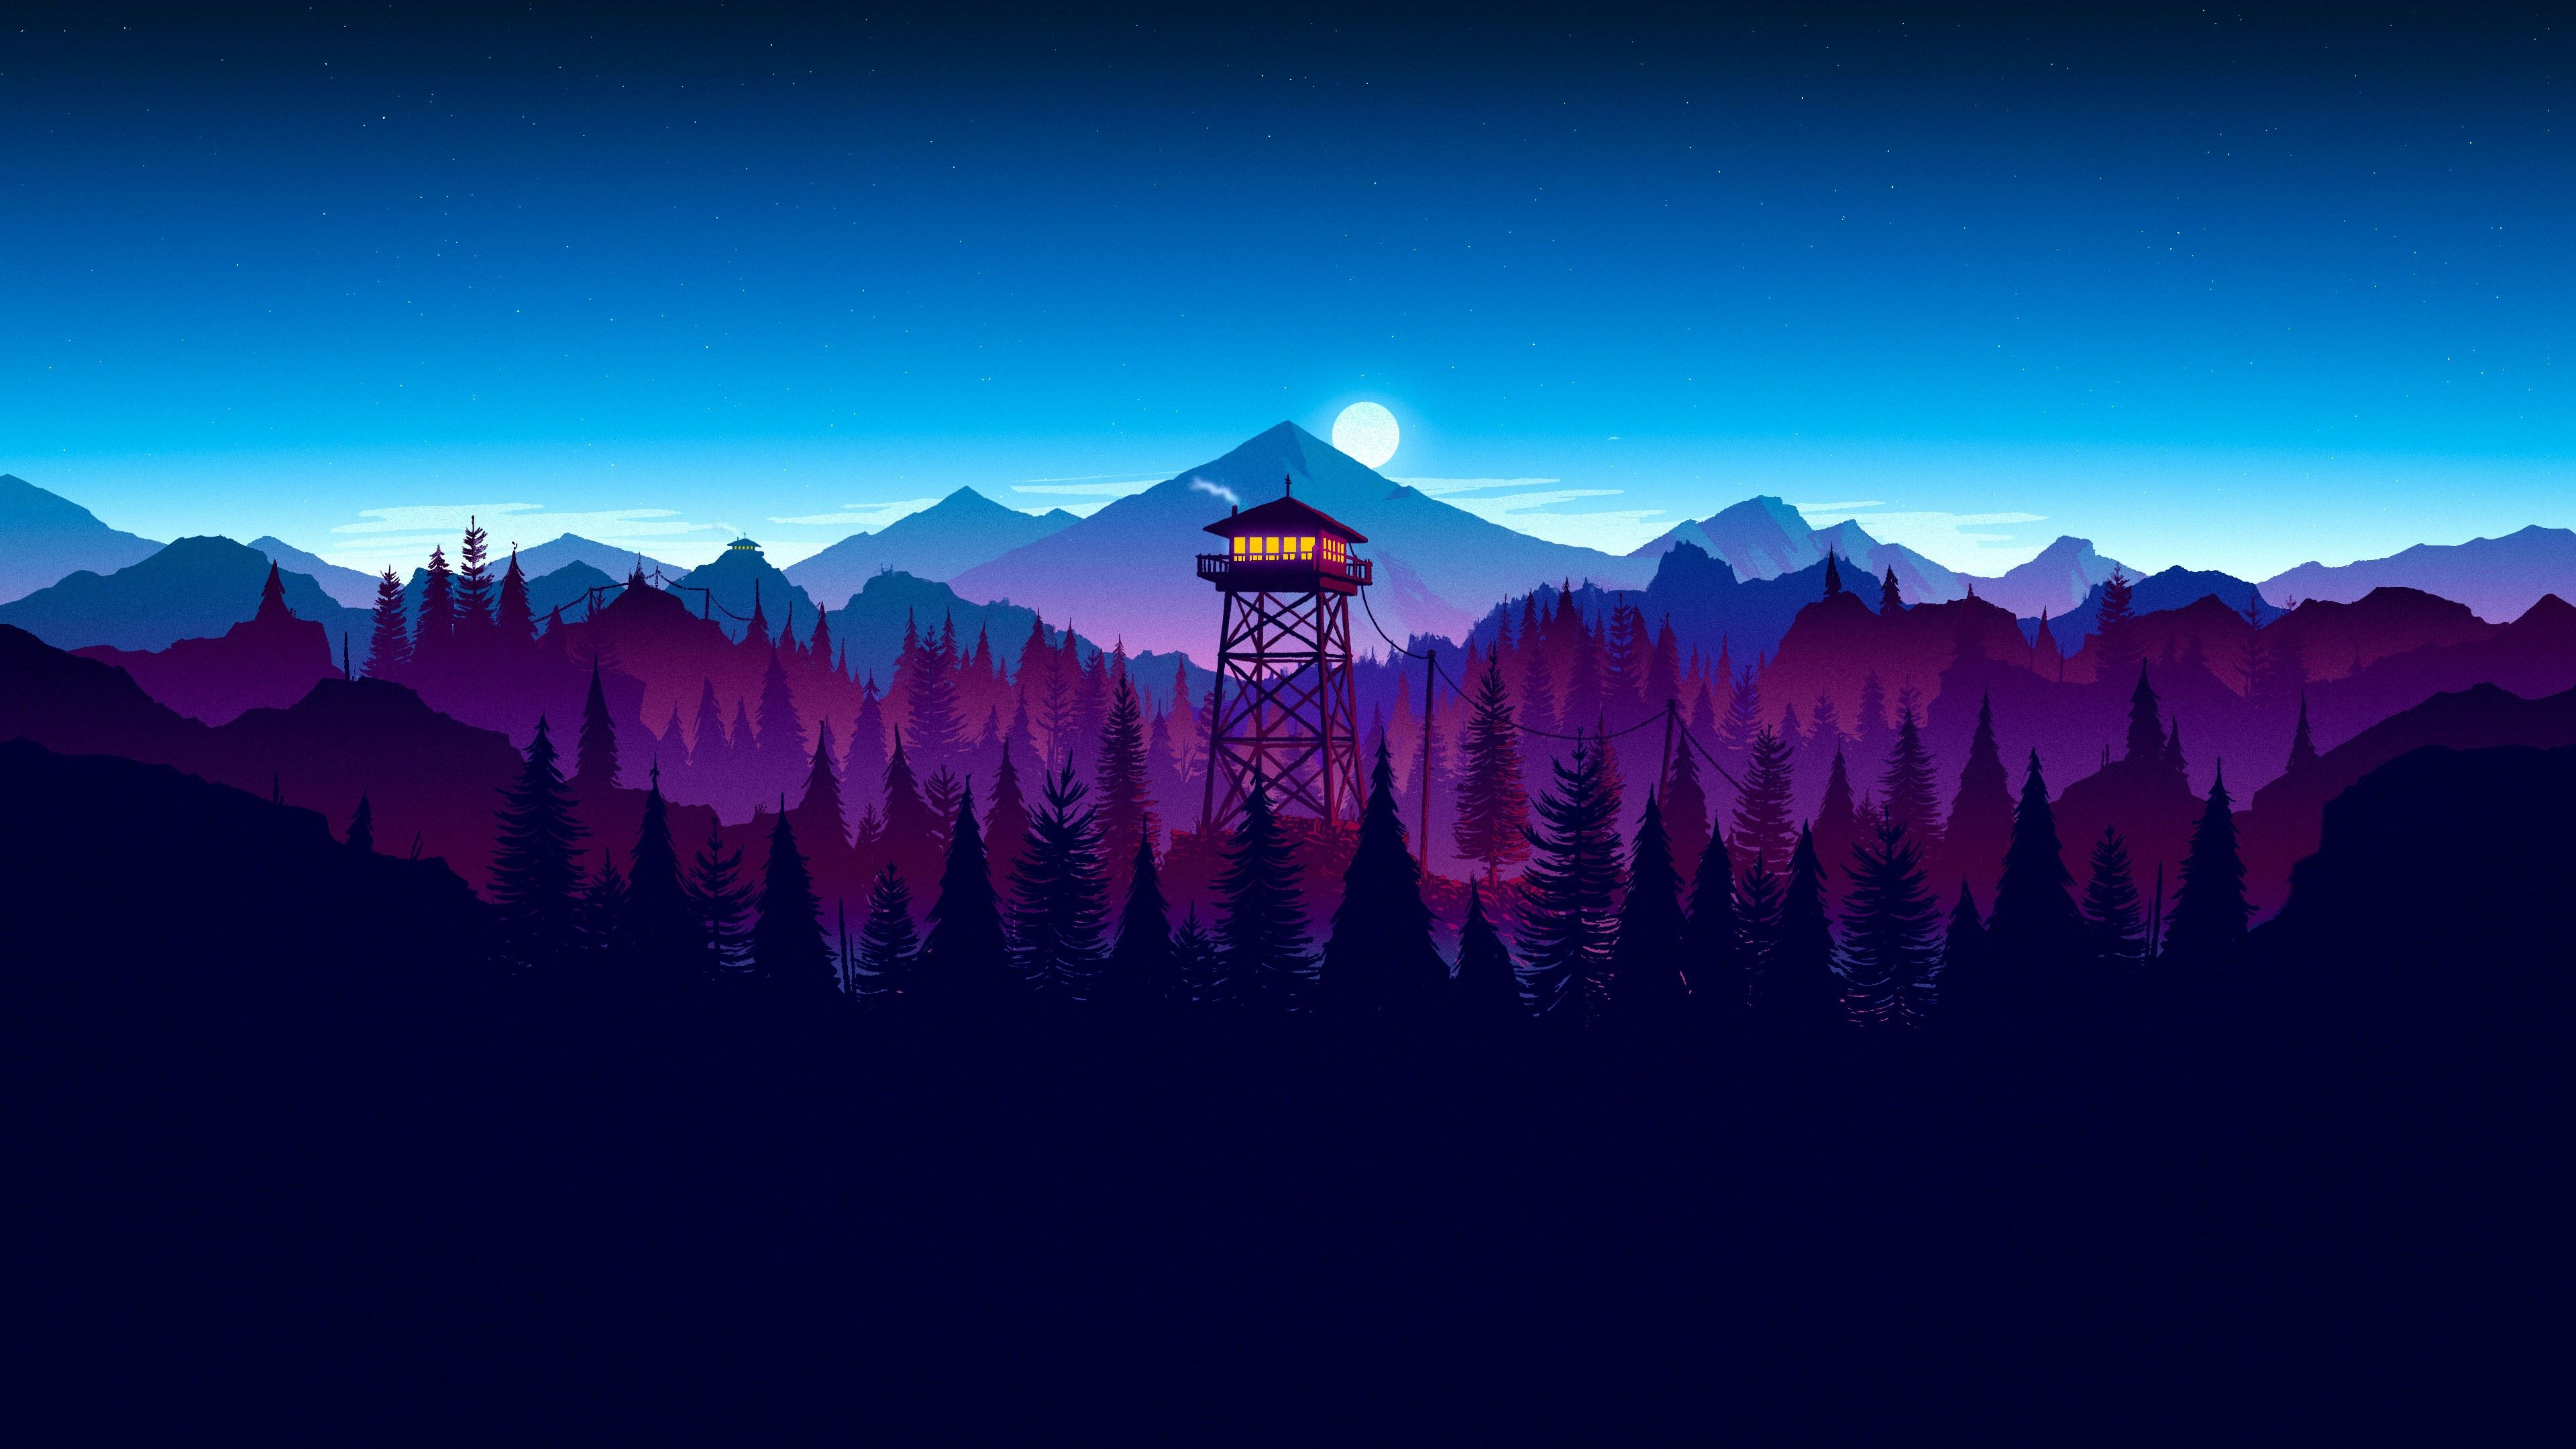 General 3840x2160 Firewatch Night Forest Sunset Artwork Digital Wallpaper Gaming Wallpapers